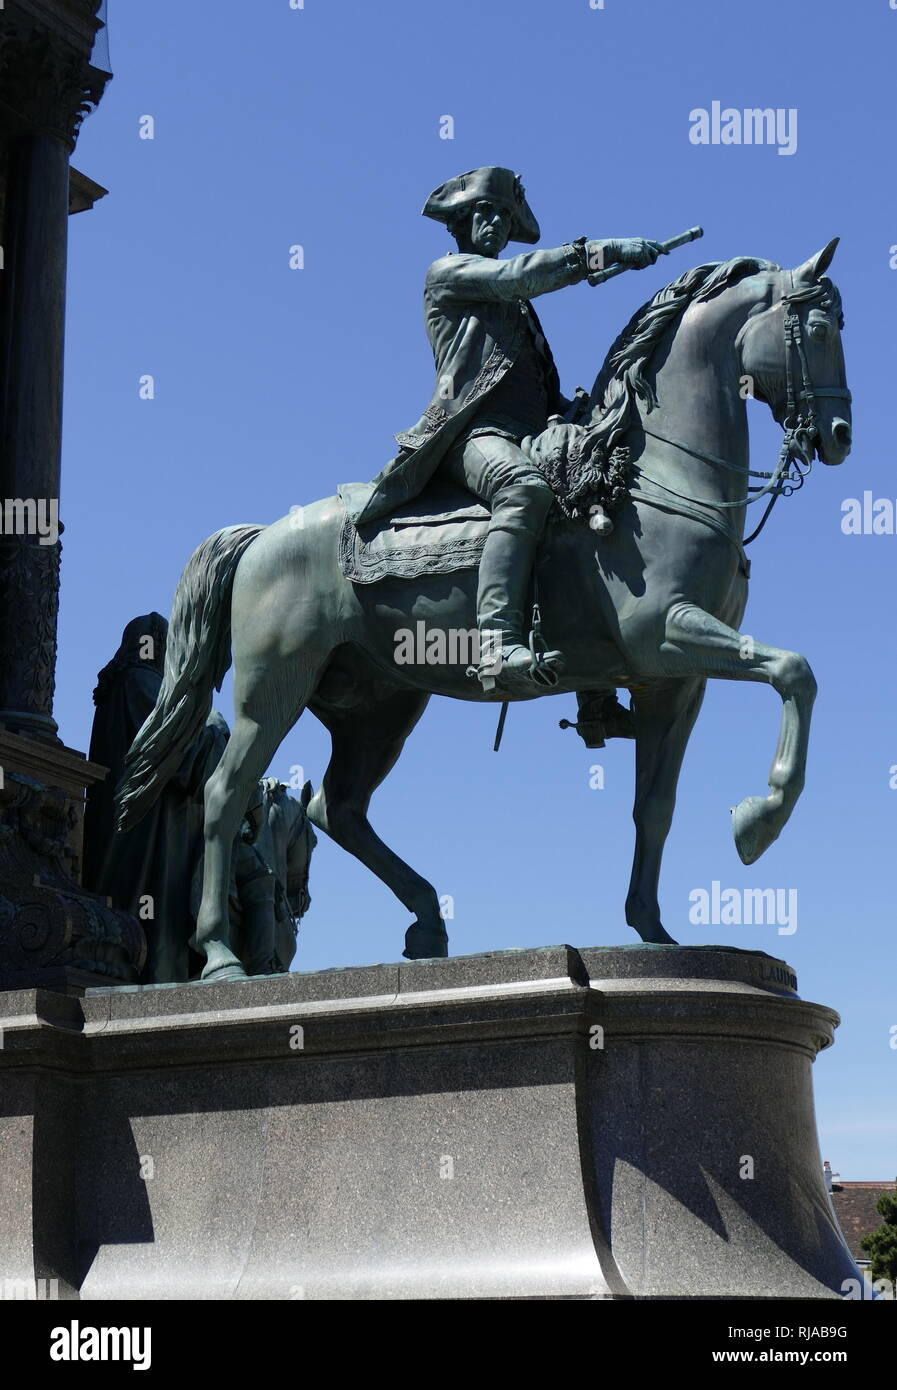 Statue in Maria-Theresien-Platz, Vienna, Austria. Maria Theresa (1717-1780), was the only female ruler of the Habsburg dominions and the last of the House of Habsburg. - Stock Image